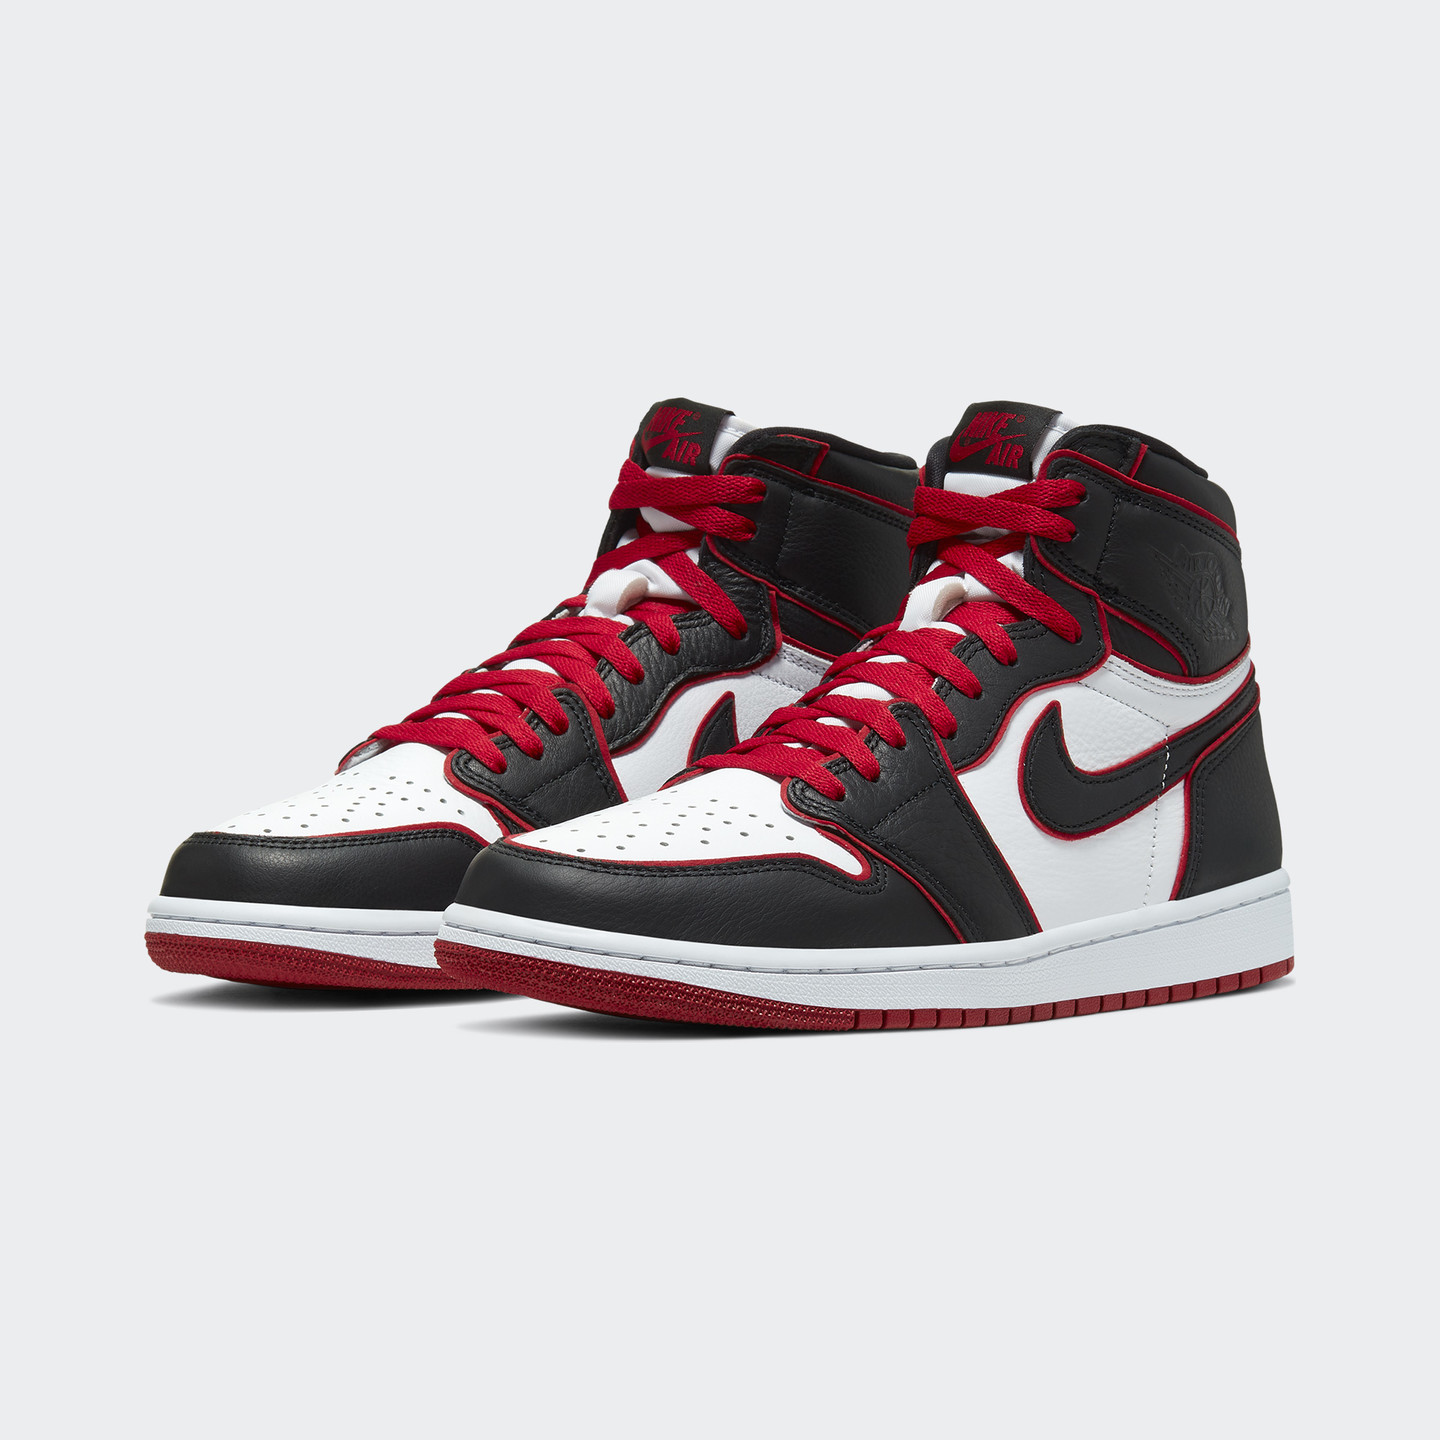 Jordan Air Jordan 1 Retro High OG 'Bloodline' Black / Gym Red / White 555088-062